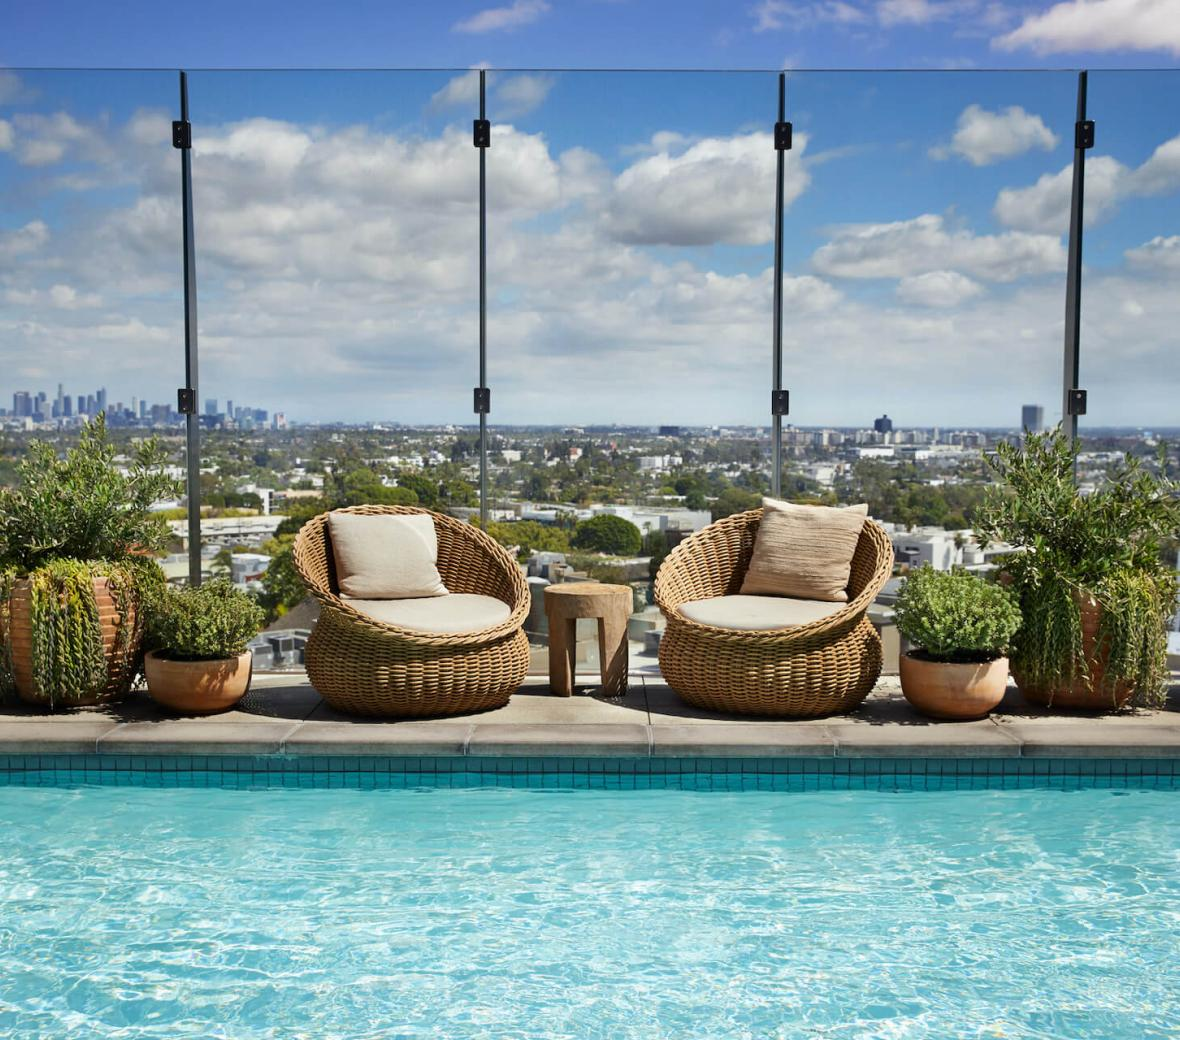 Views of LA from the Rooftop Pool